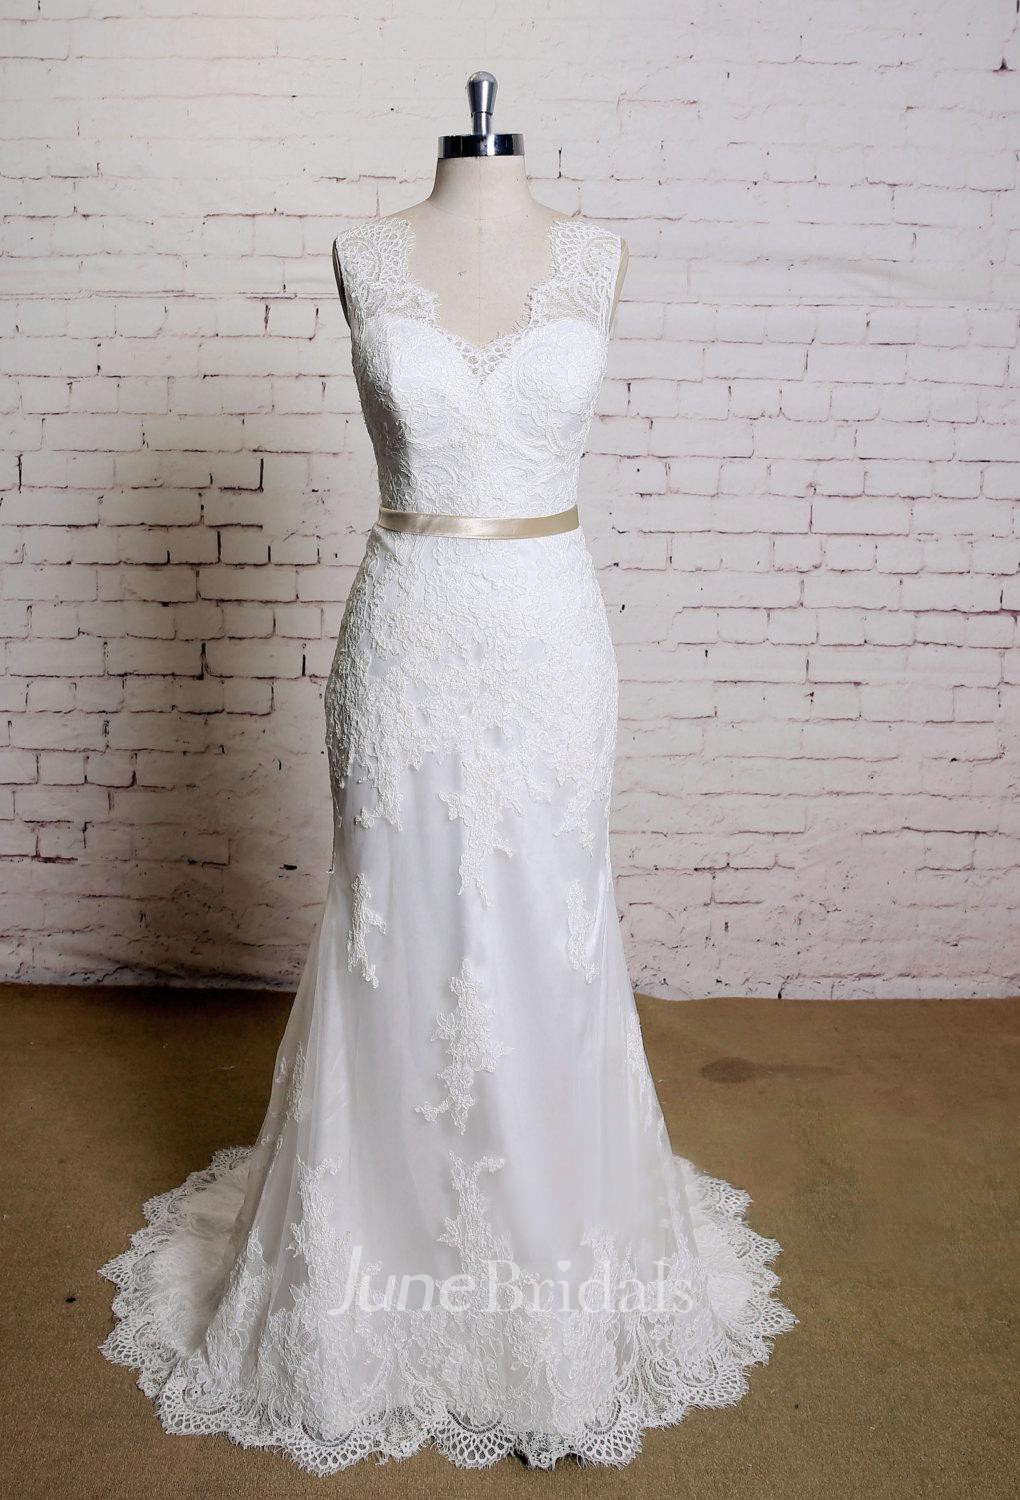 e1f9dd67f7 V-Neck Sleeveless Lace Mermaid Wedding Dress With Satin Sash - June Bridals